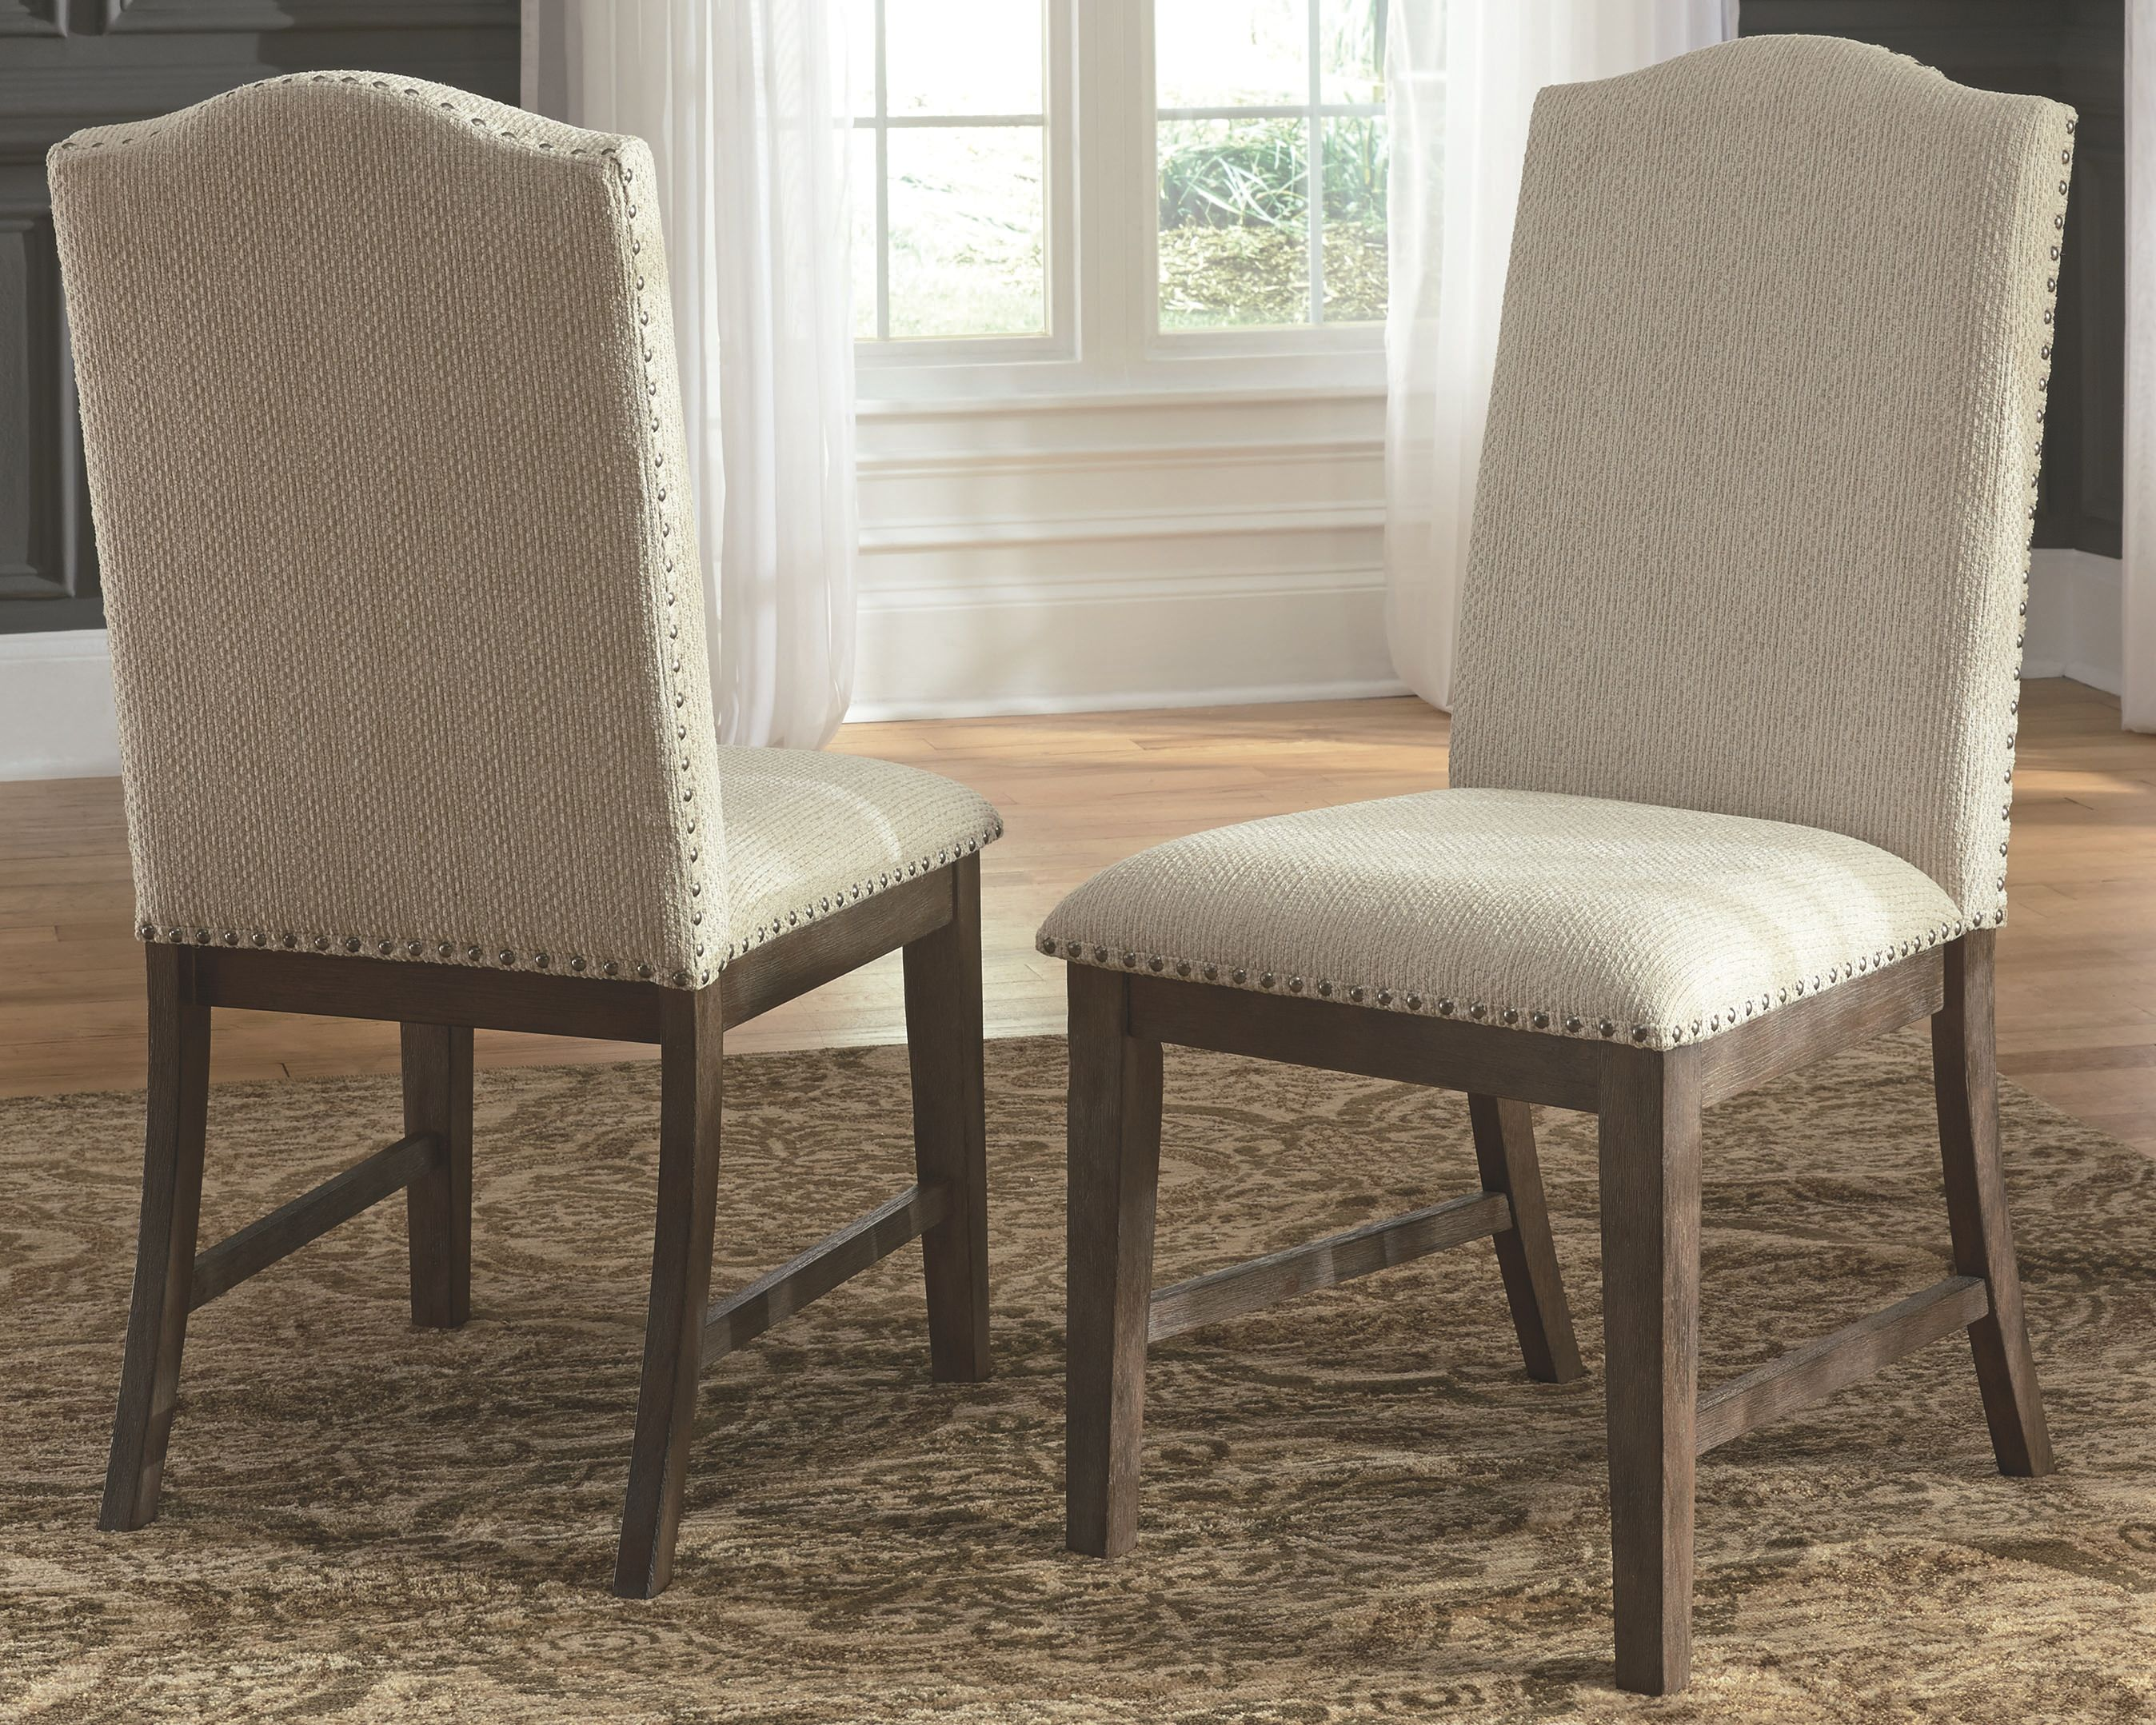 Super Johnelle Dining Room Chair Set Of 2 Beige Products In Customarchery Wood Chair Design Ideas Customarcherynet